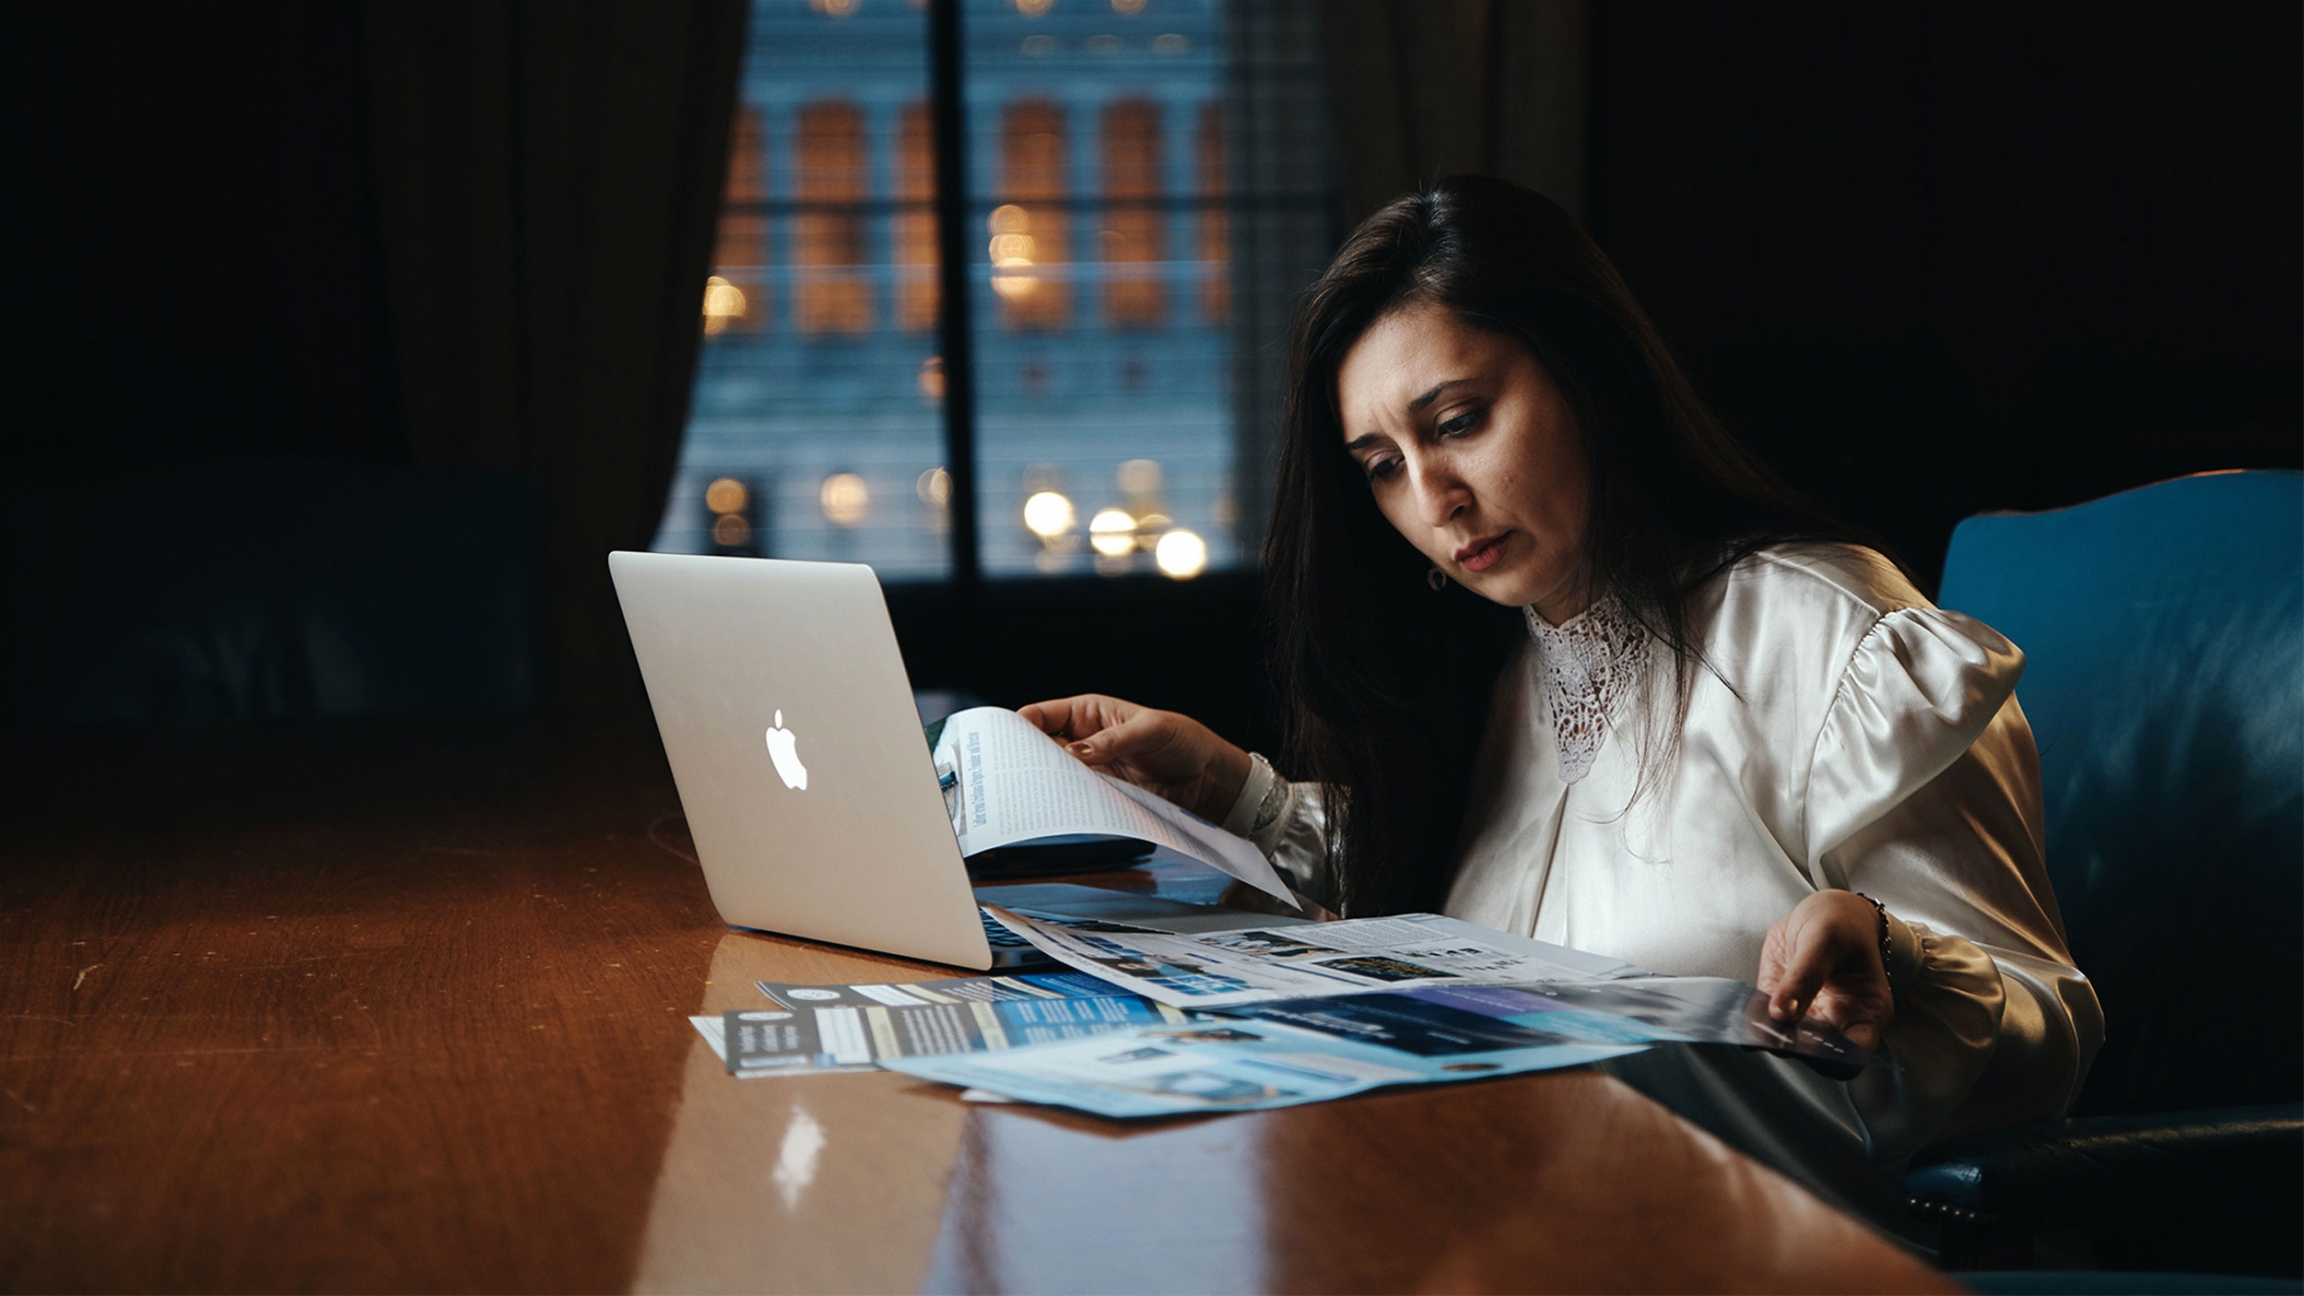 Woman in a white blouse working at a desk on her laptop